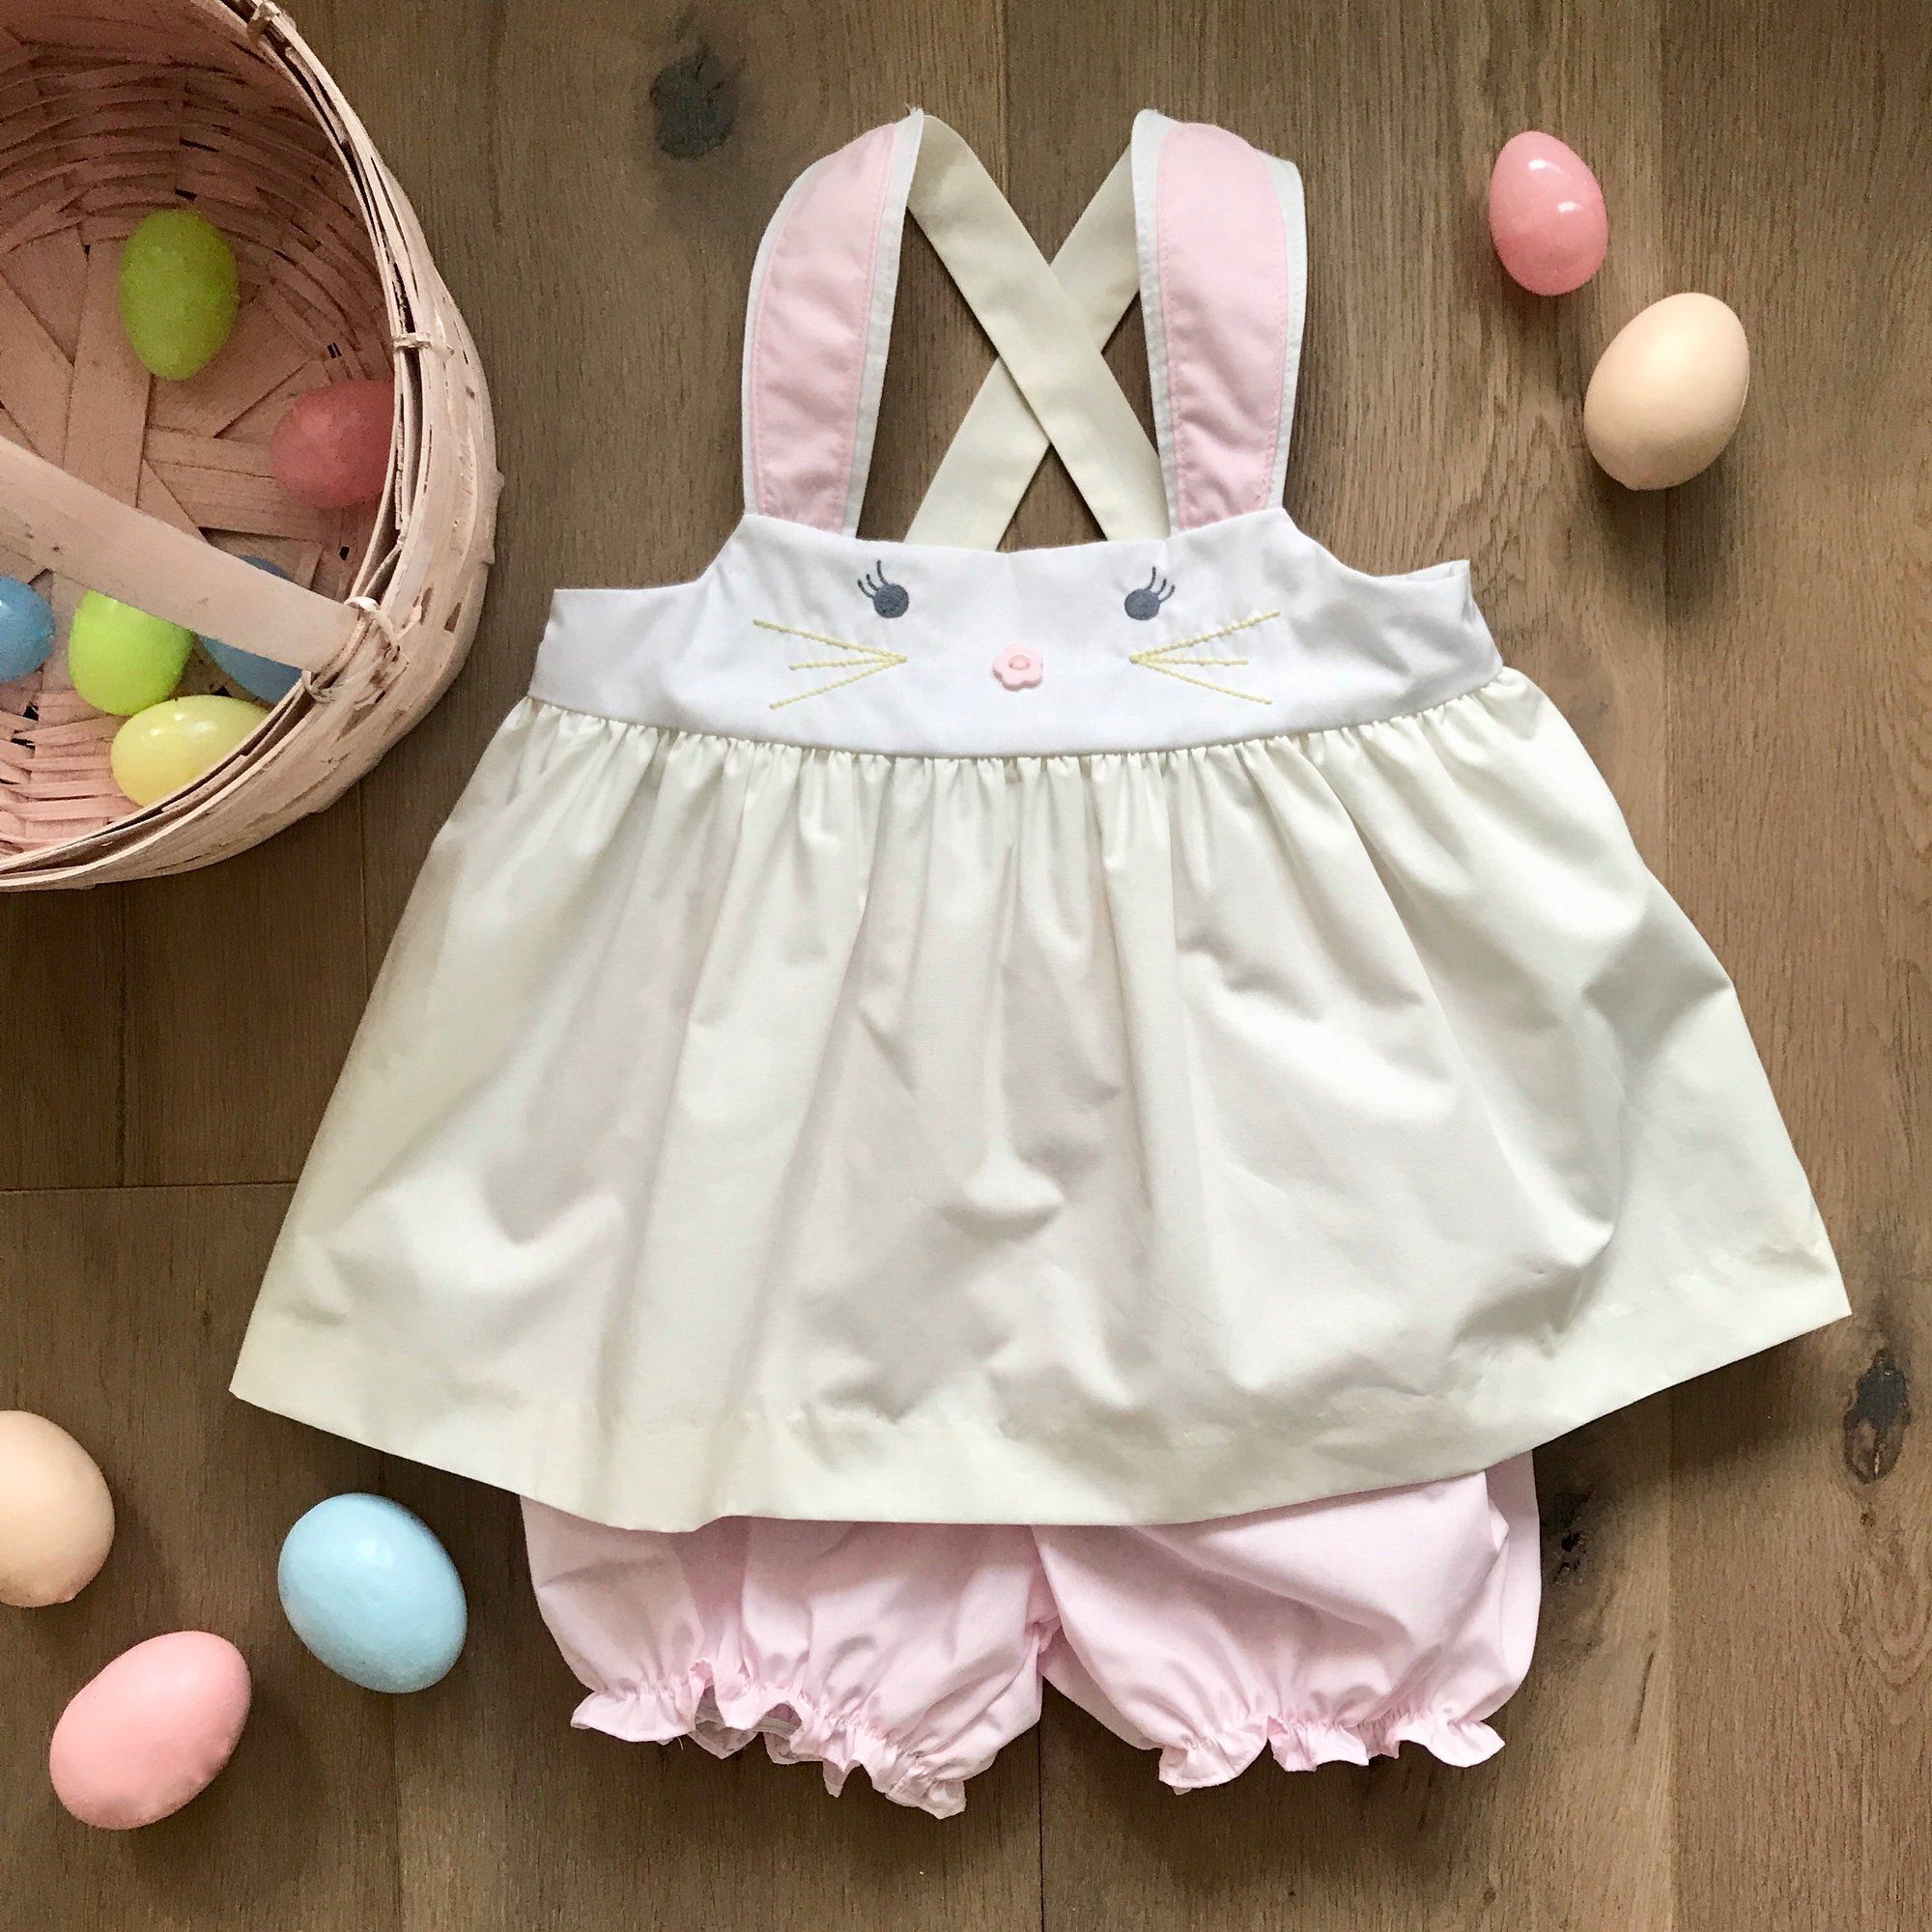 ce835fba39e1a Nancy's Novelty Set - Bunny Top with Plantation Pink Bloomers - The  Beaufort Bonnet Company